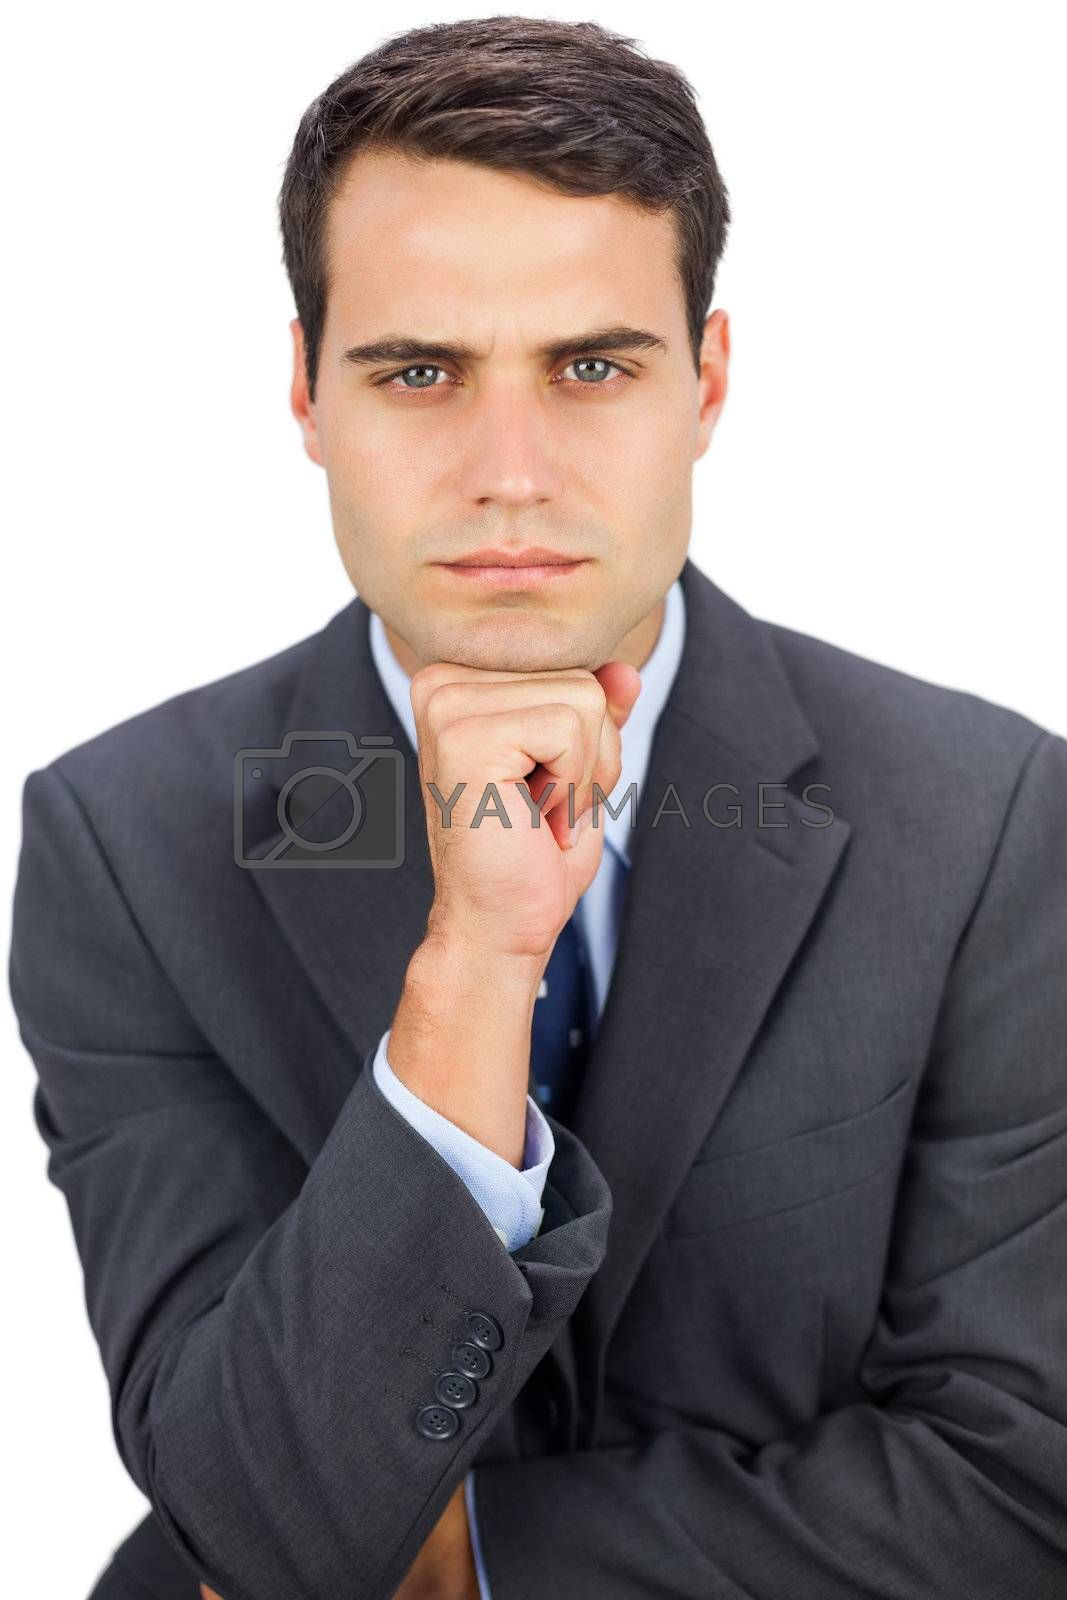 Frowning businessman looking at camera by Wavebreakmedia